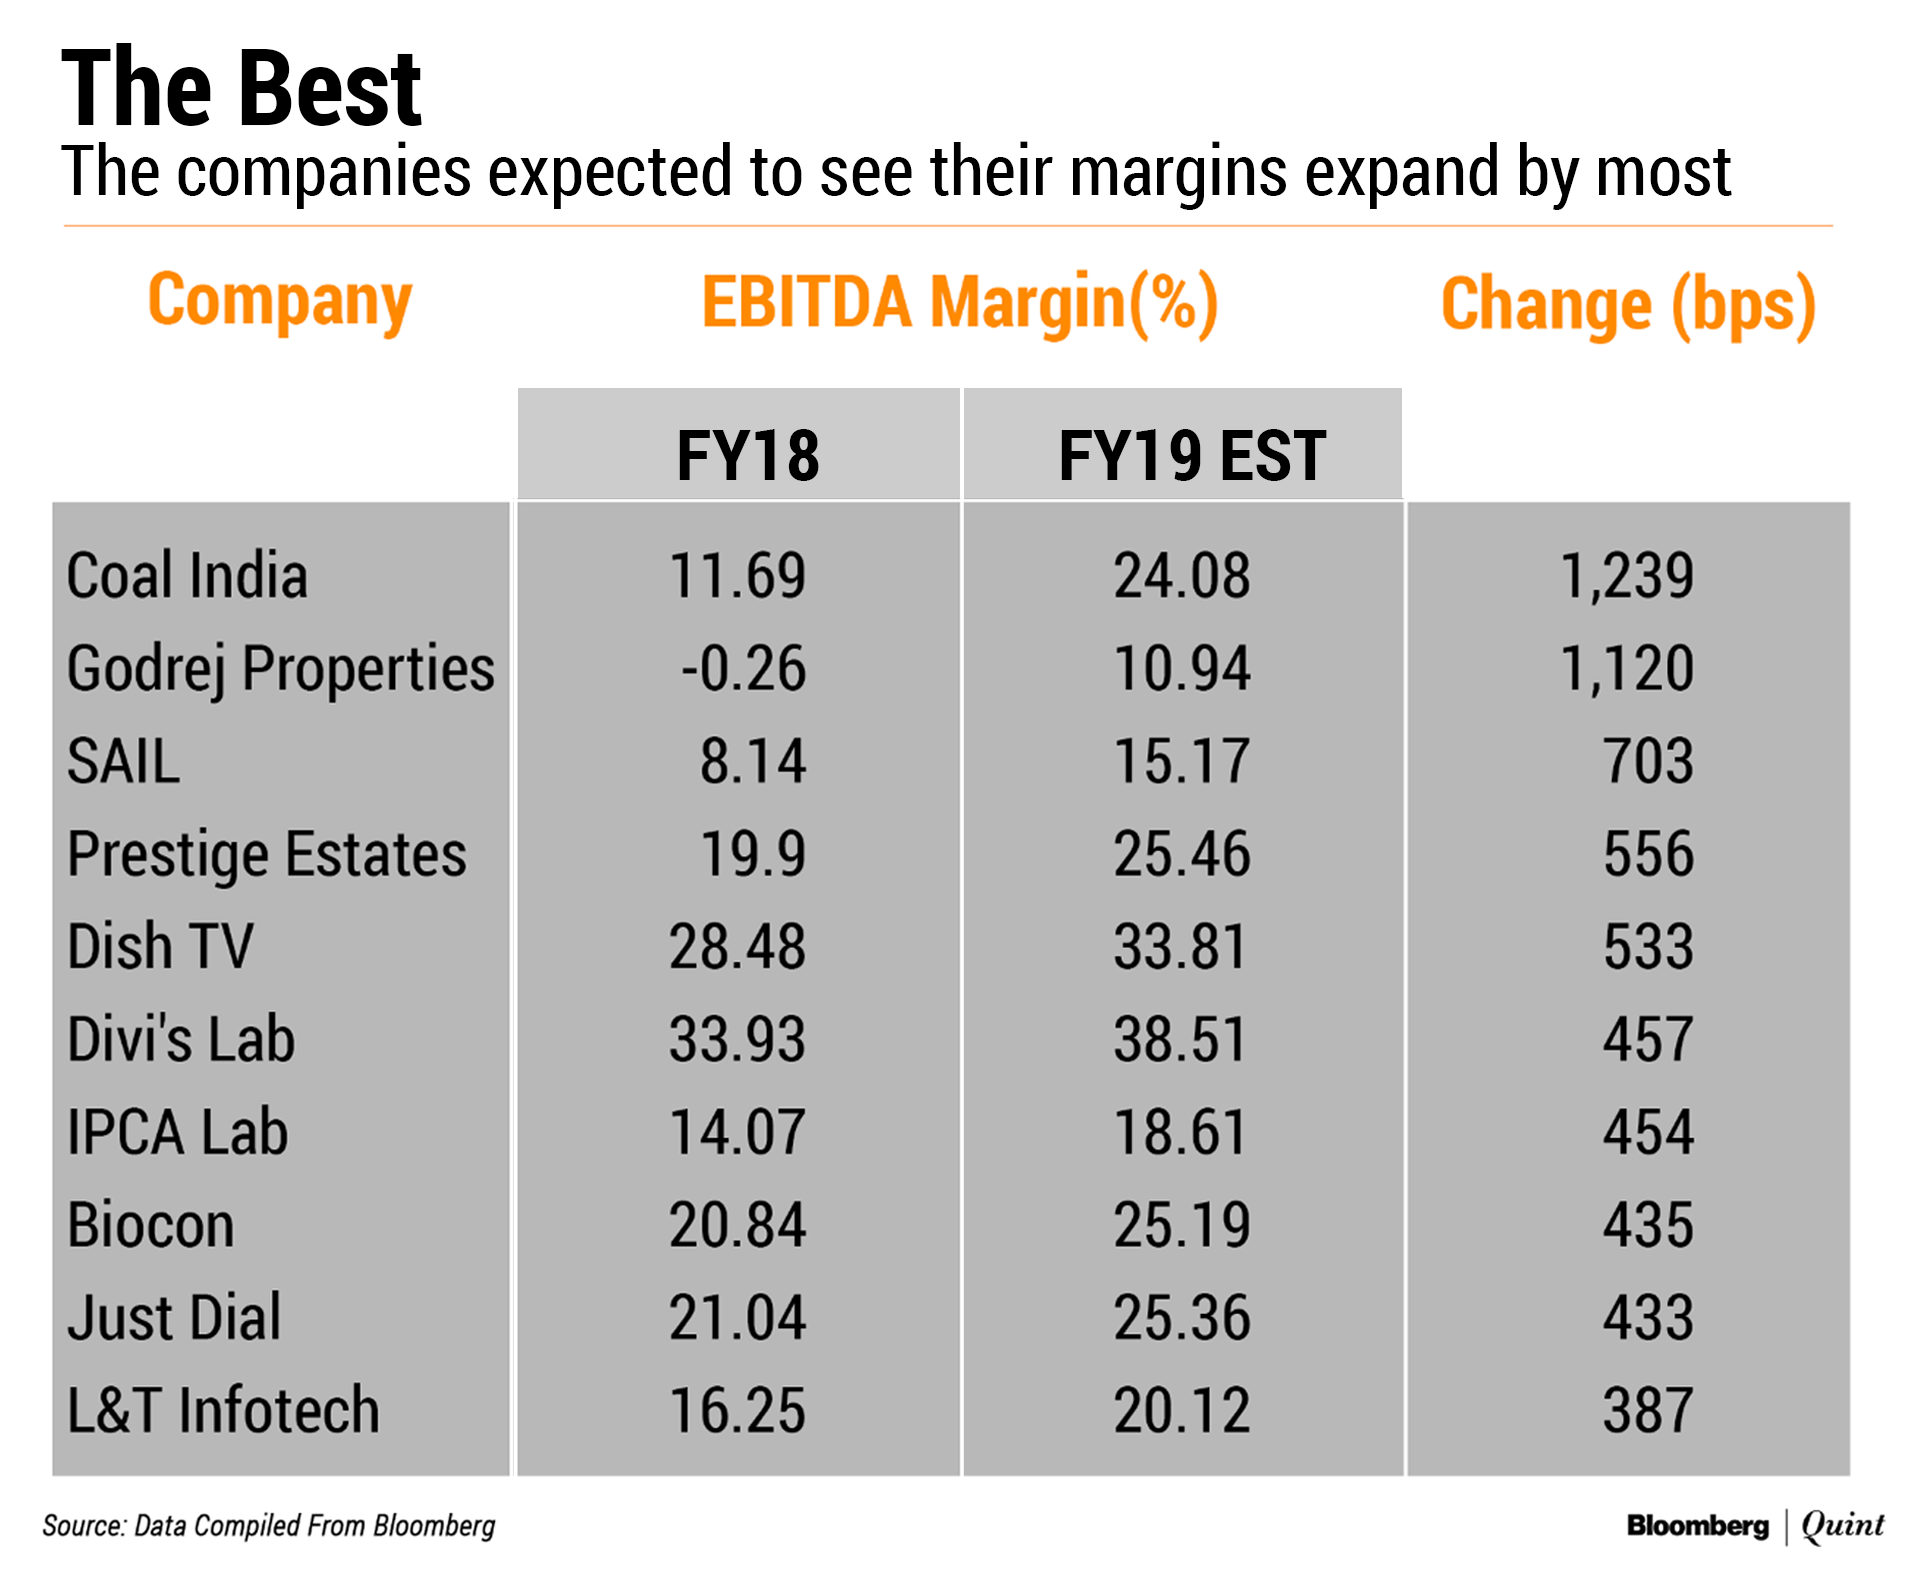 These Companies May Deliver The Best And Worst Margin Performance In FY19